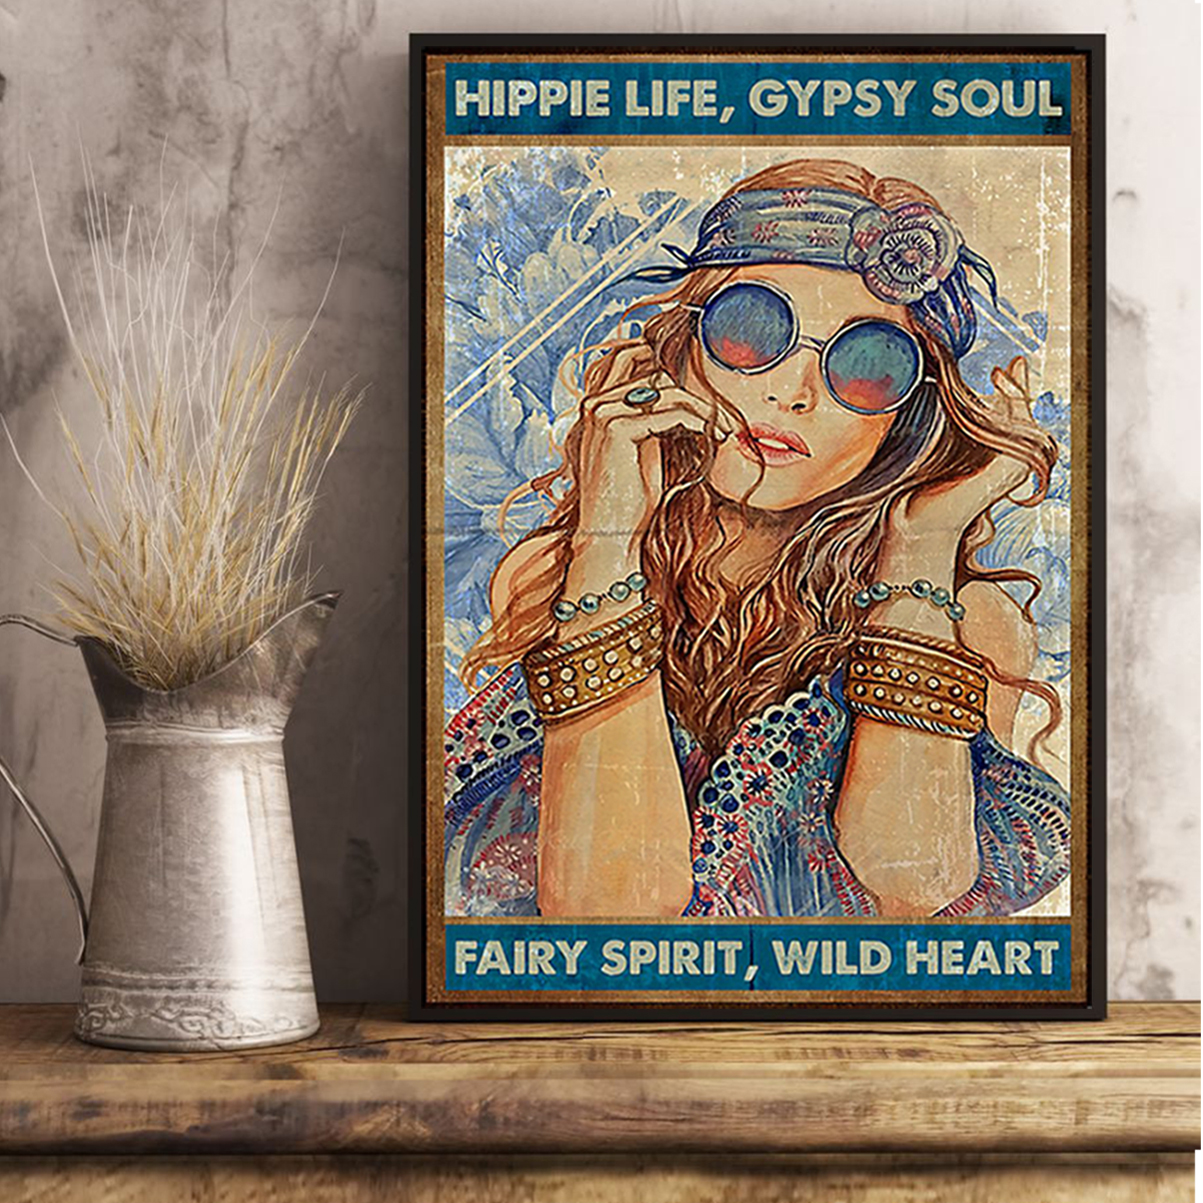 Hippie life gypsy soul fairy spirit wild heart poster A3